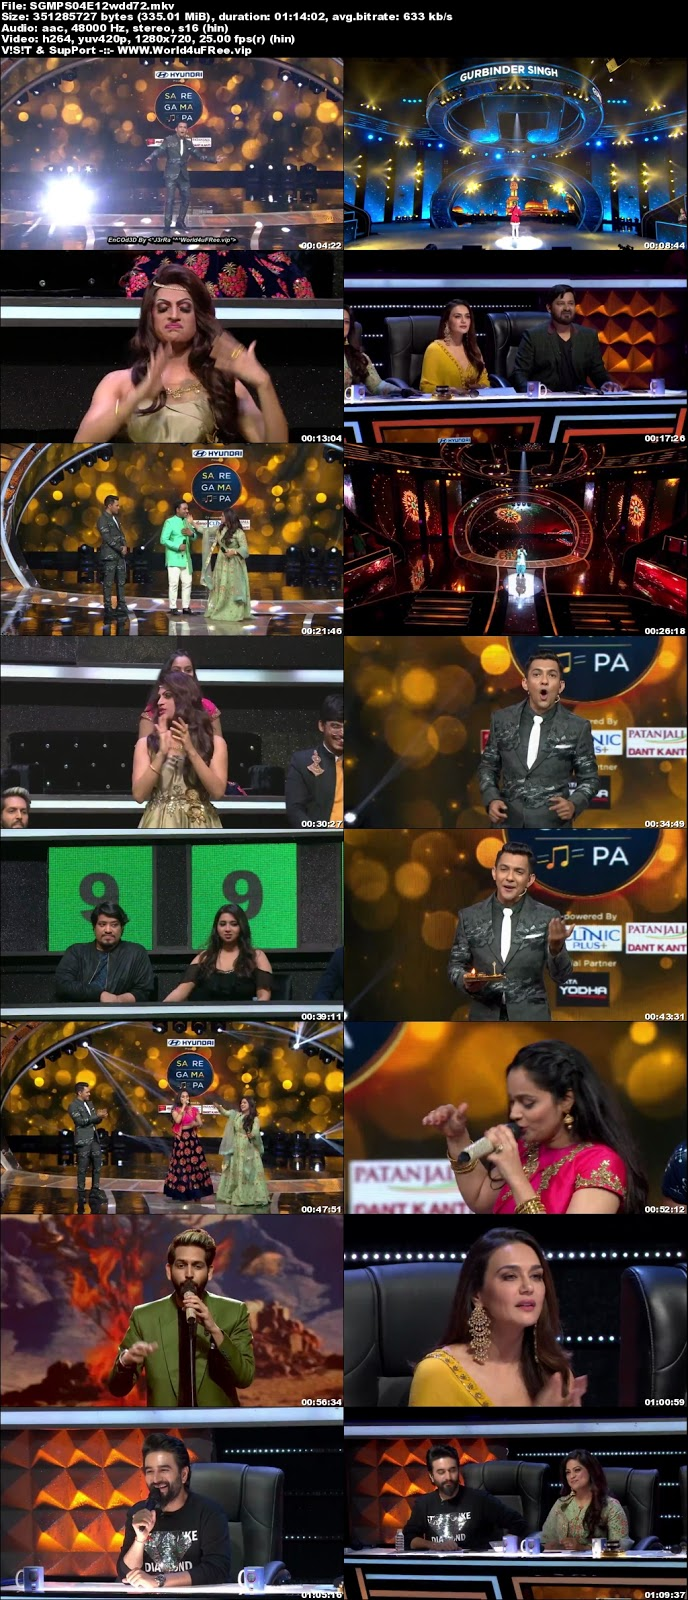 Sa Re Ga Ma Pa 2018 S04 Episode 12 720p WEBRip 300Mb x264 world4ufree.vip tv show Sa Re Ga Ma Pa 2018 S04 2018 hindi Zee tv show compressed small size free download or watch online at world4ufree.vip